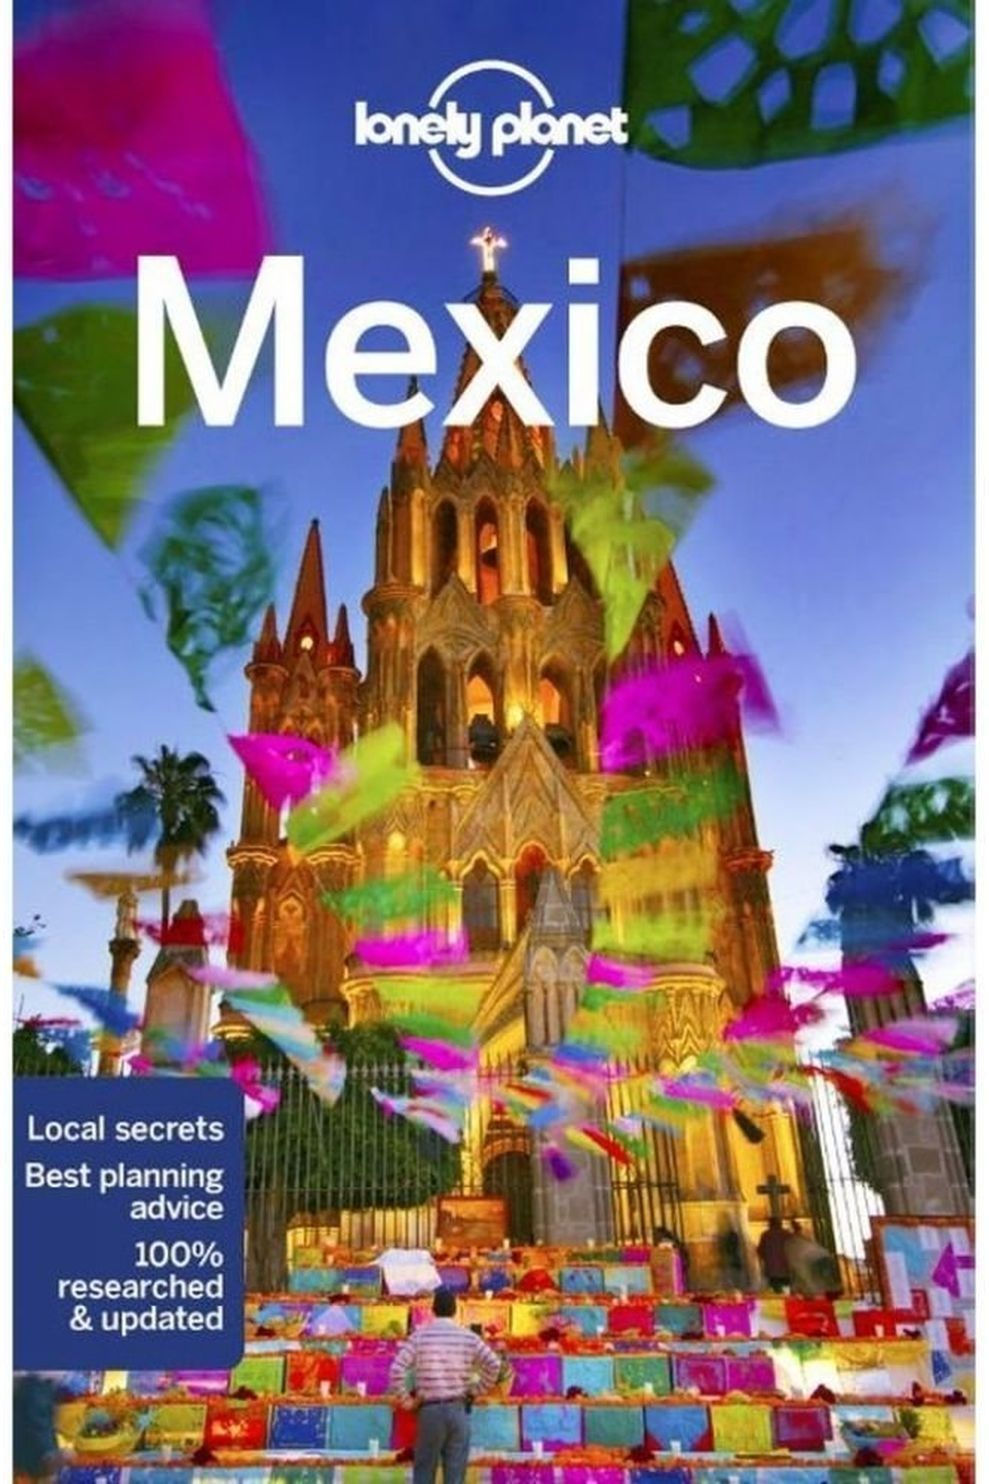 Lonely Planet Mexico-15 N09/2018 - 2018